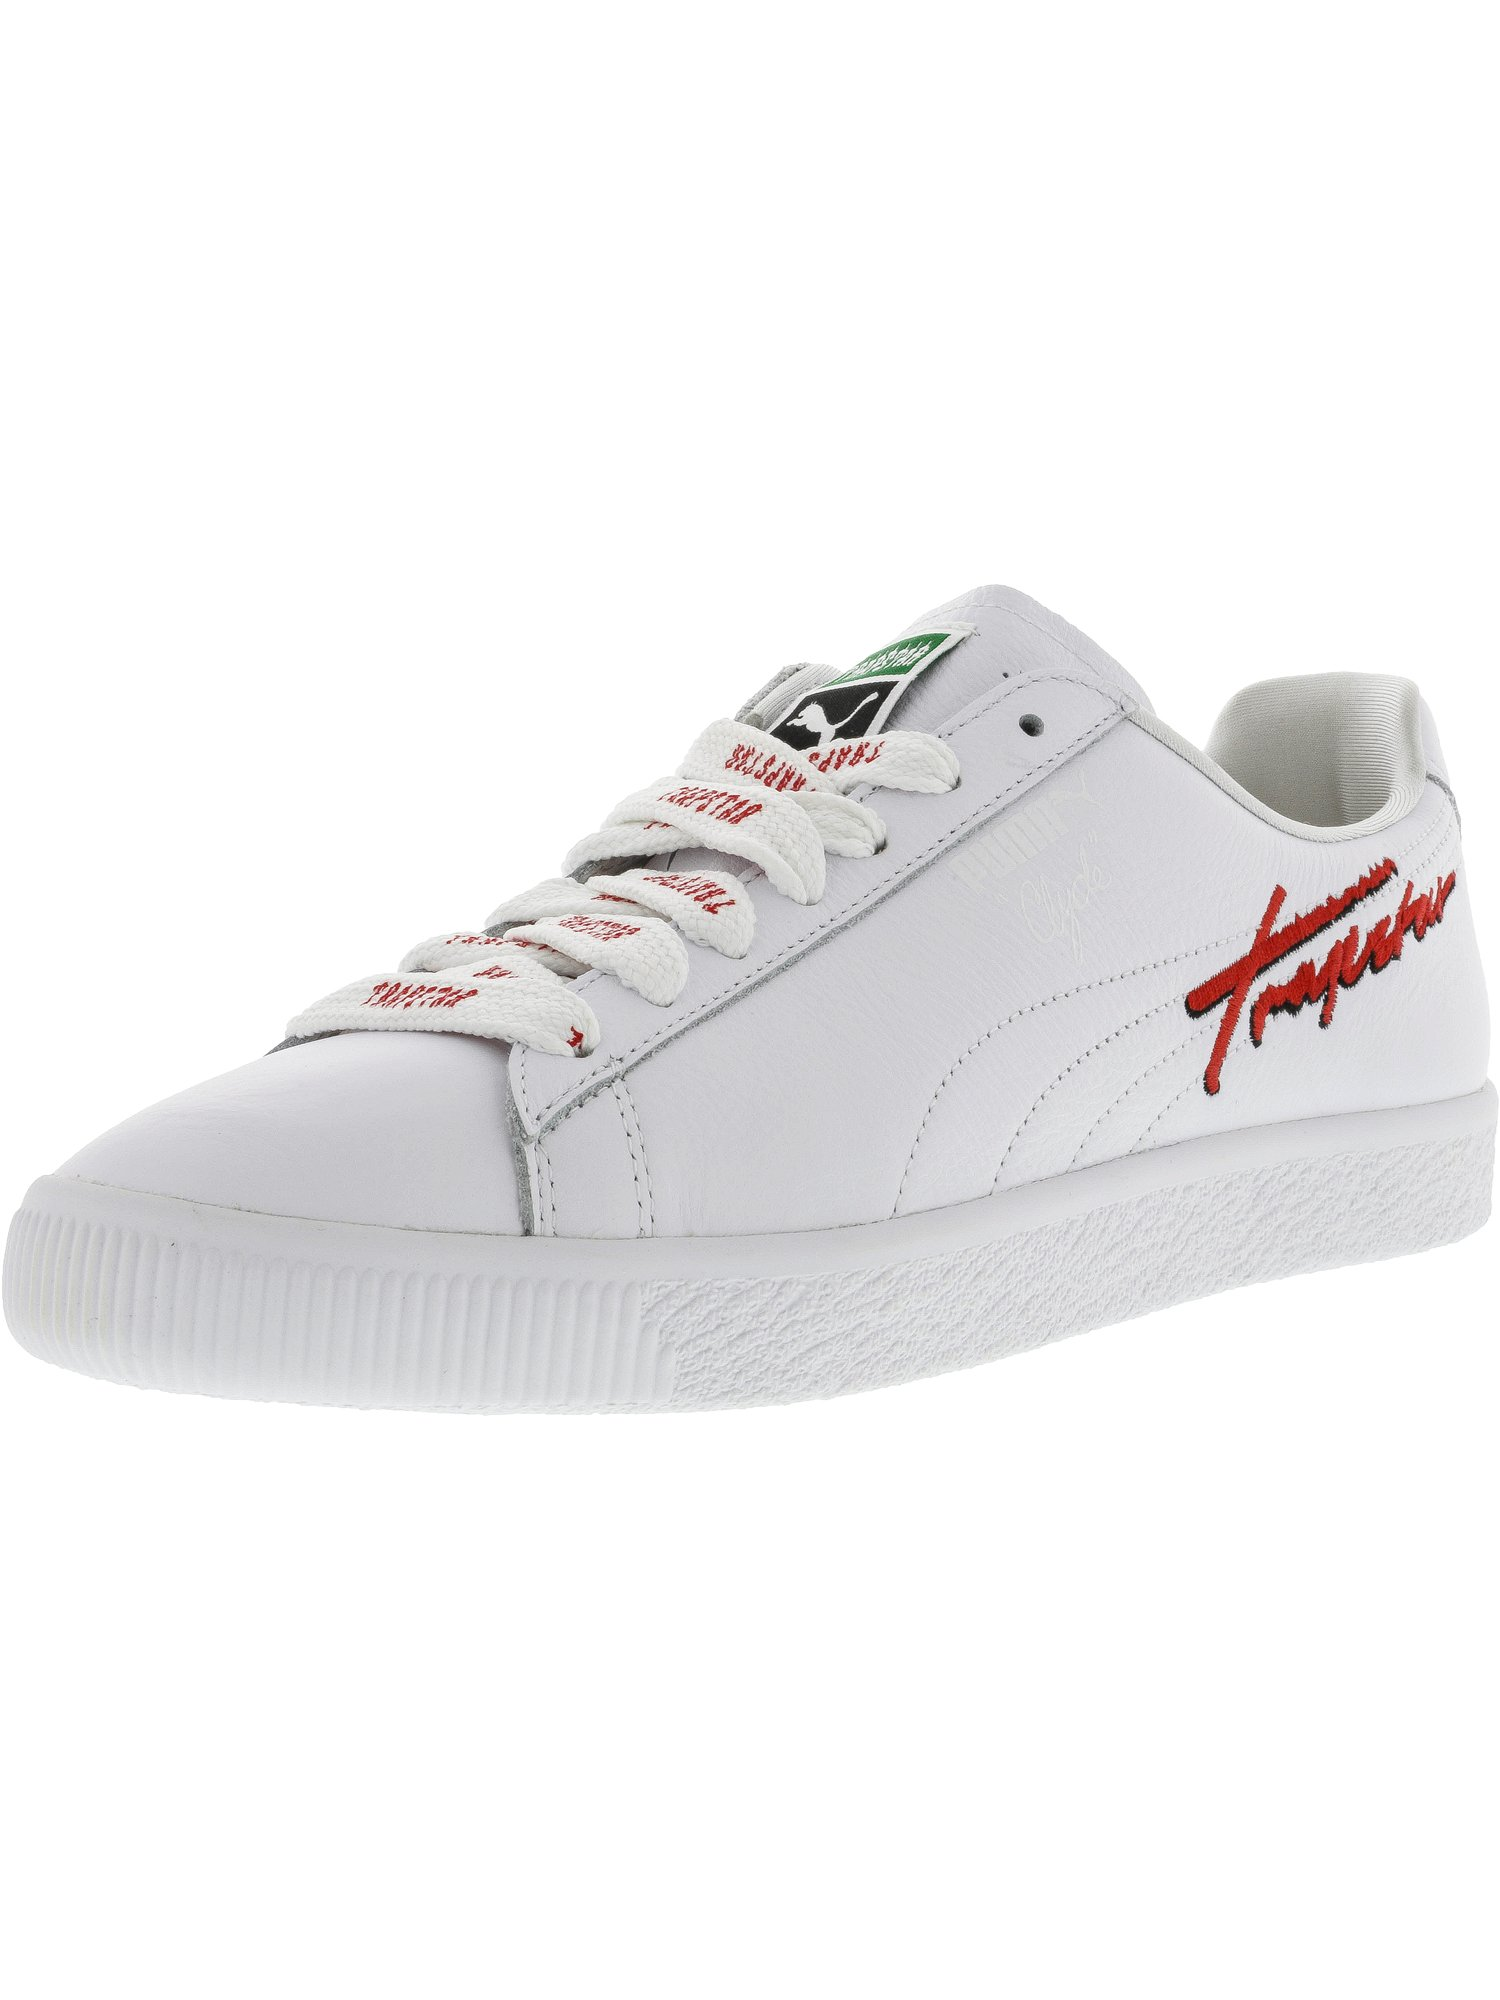 Puma Men's X Trapstar Clyde White Ankle-High Leather Fashion Sneaker 9.5M by Puma